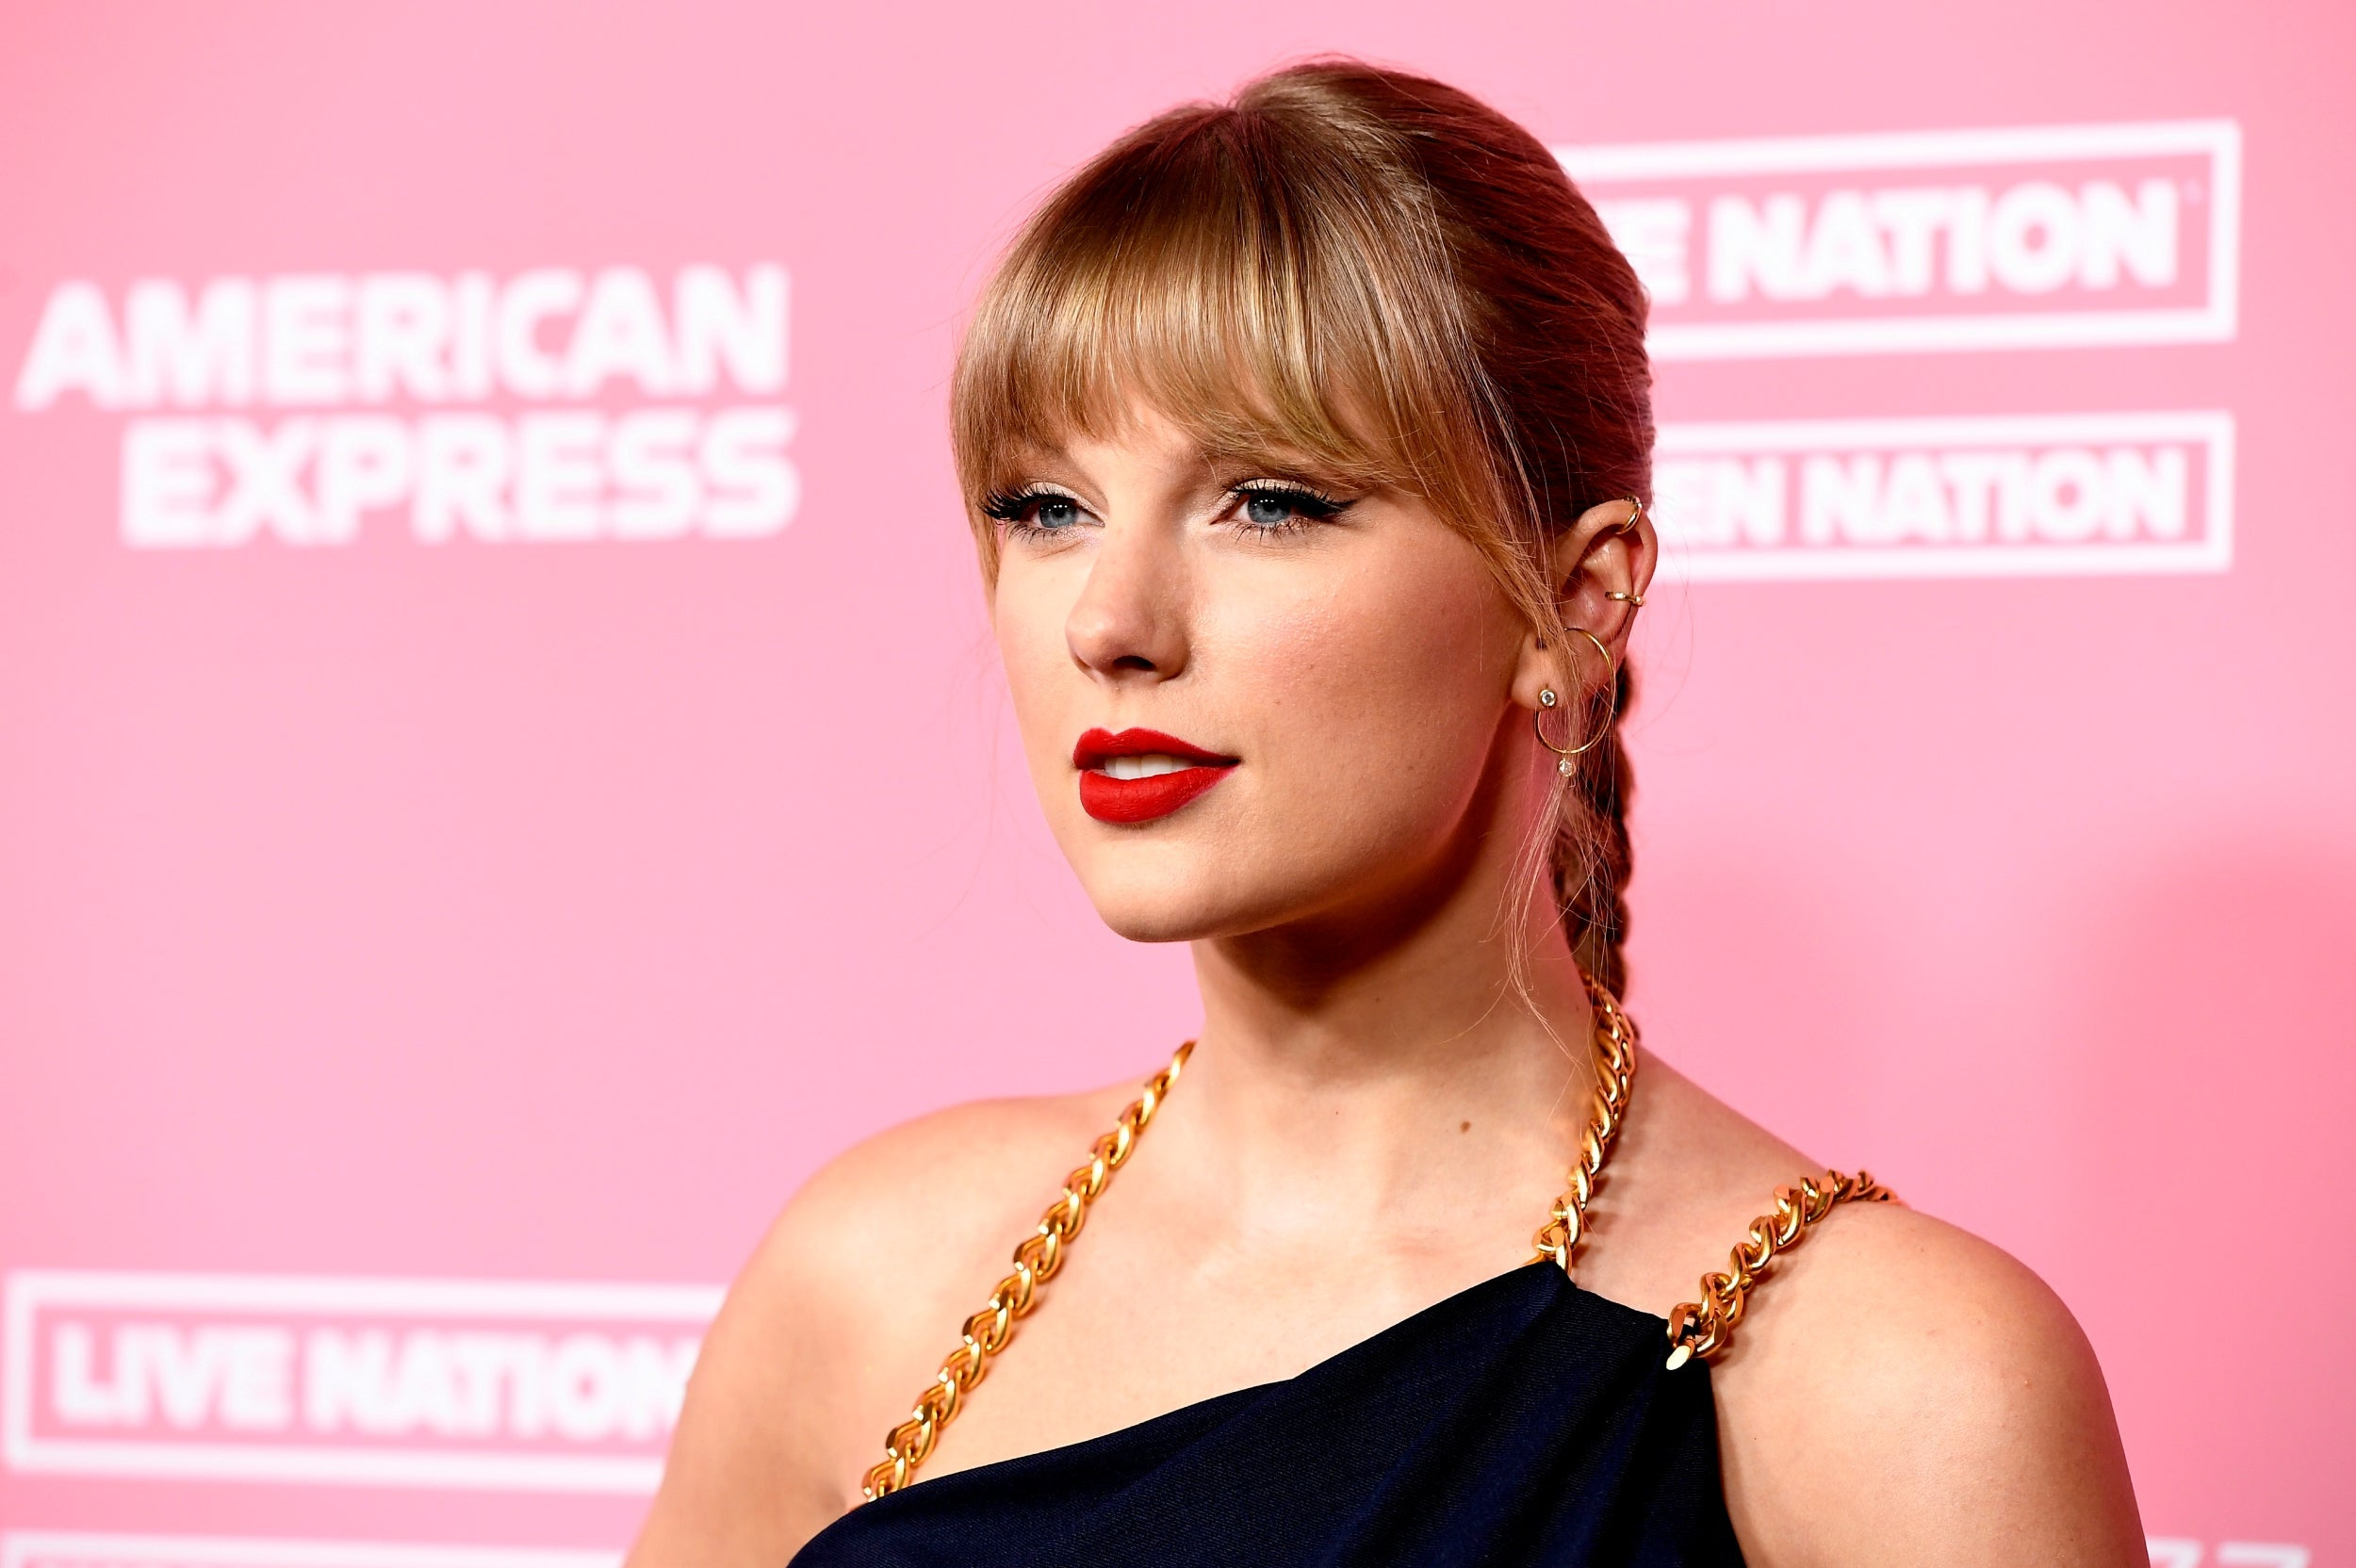 Taylor Swift makes withering speech about Scooter Braun while accepting Billboard's Woman of the Decade